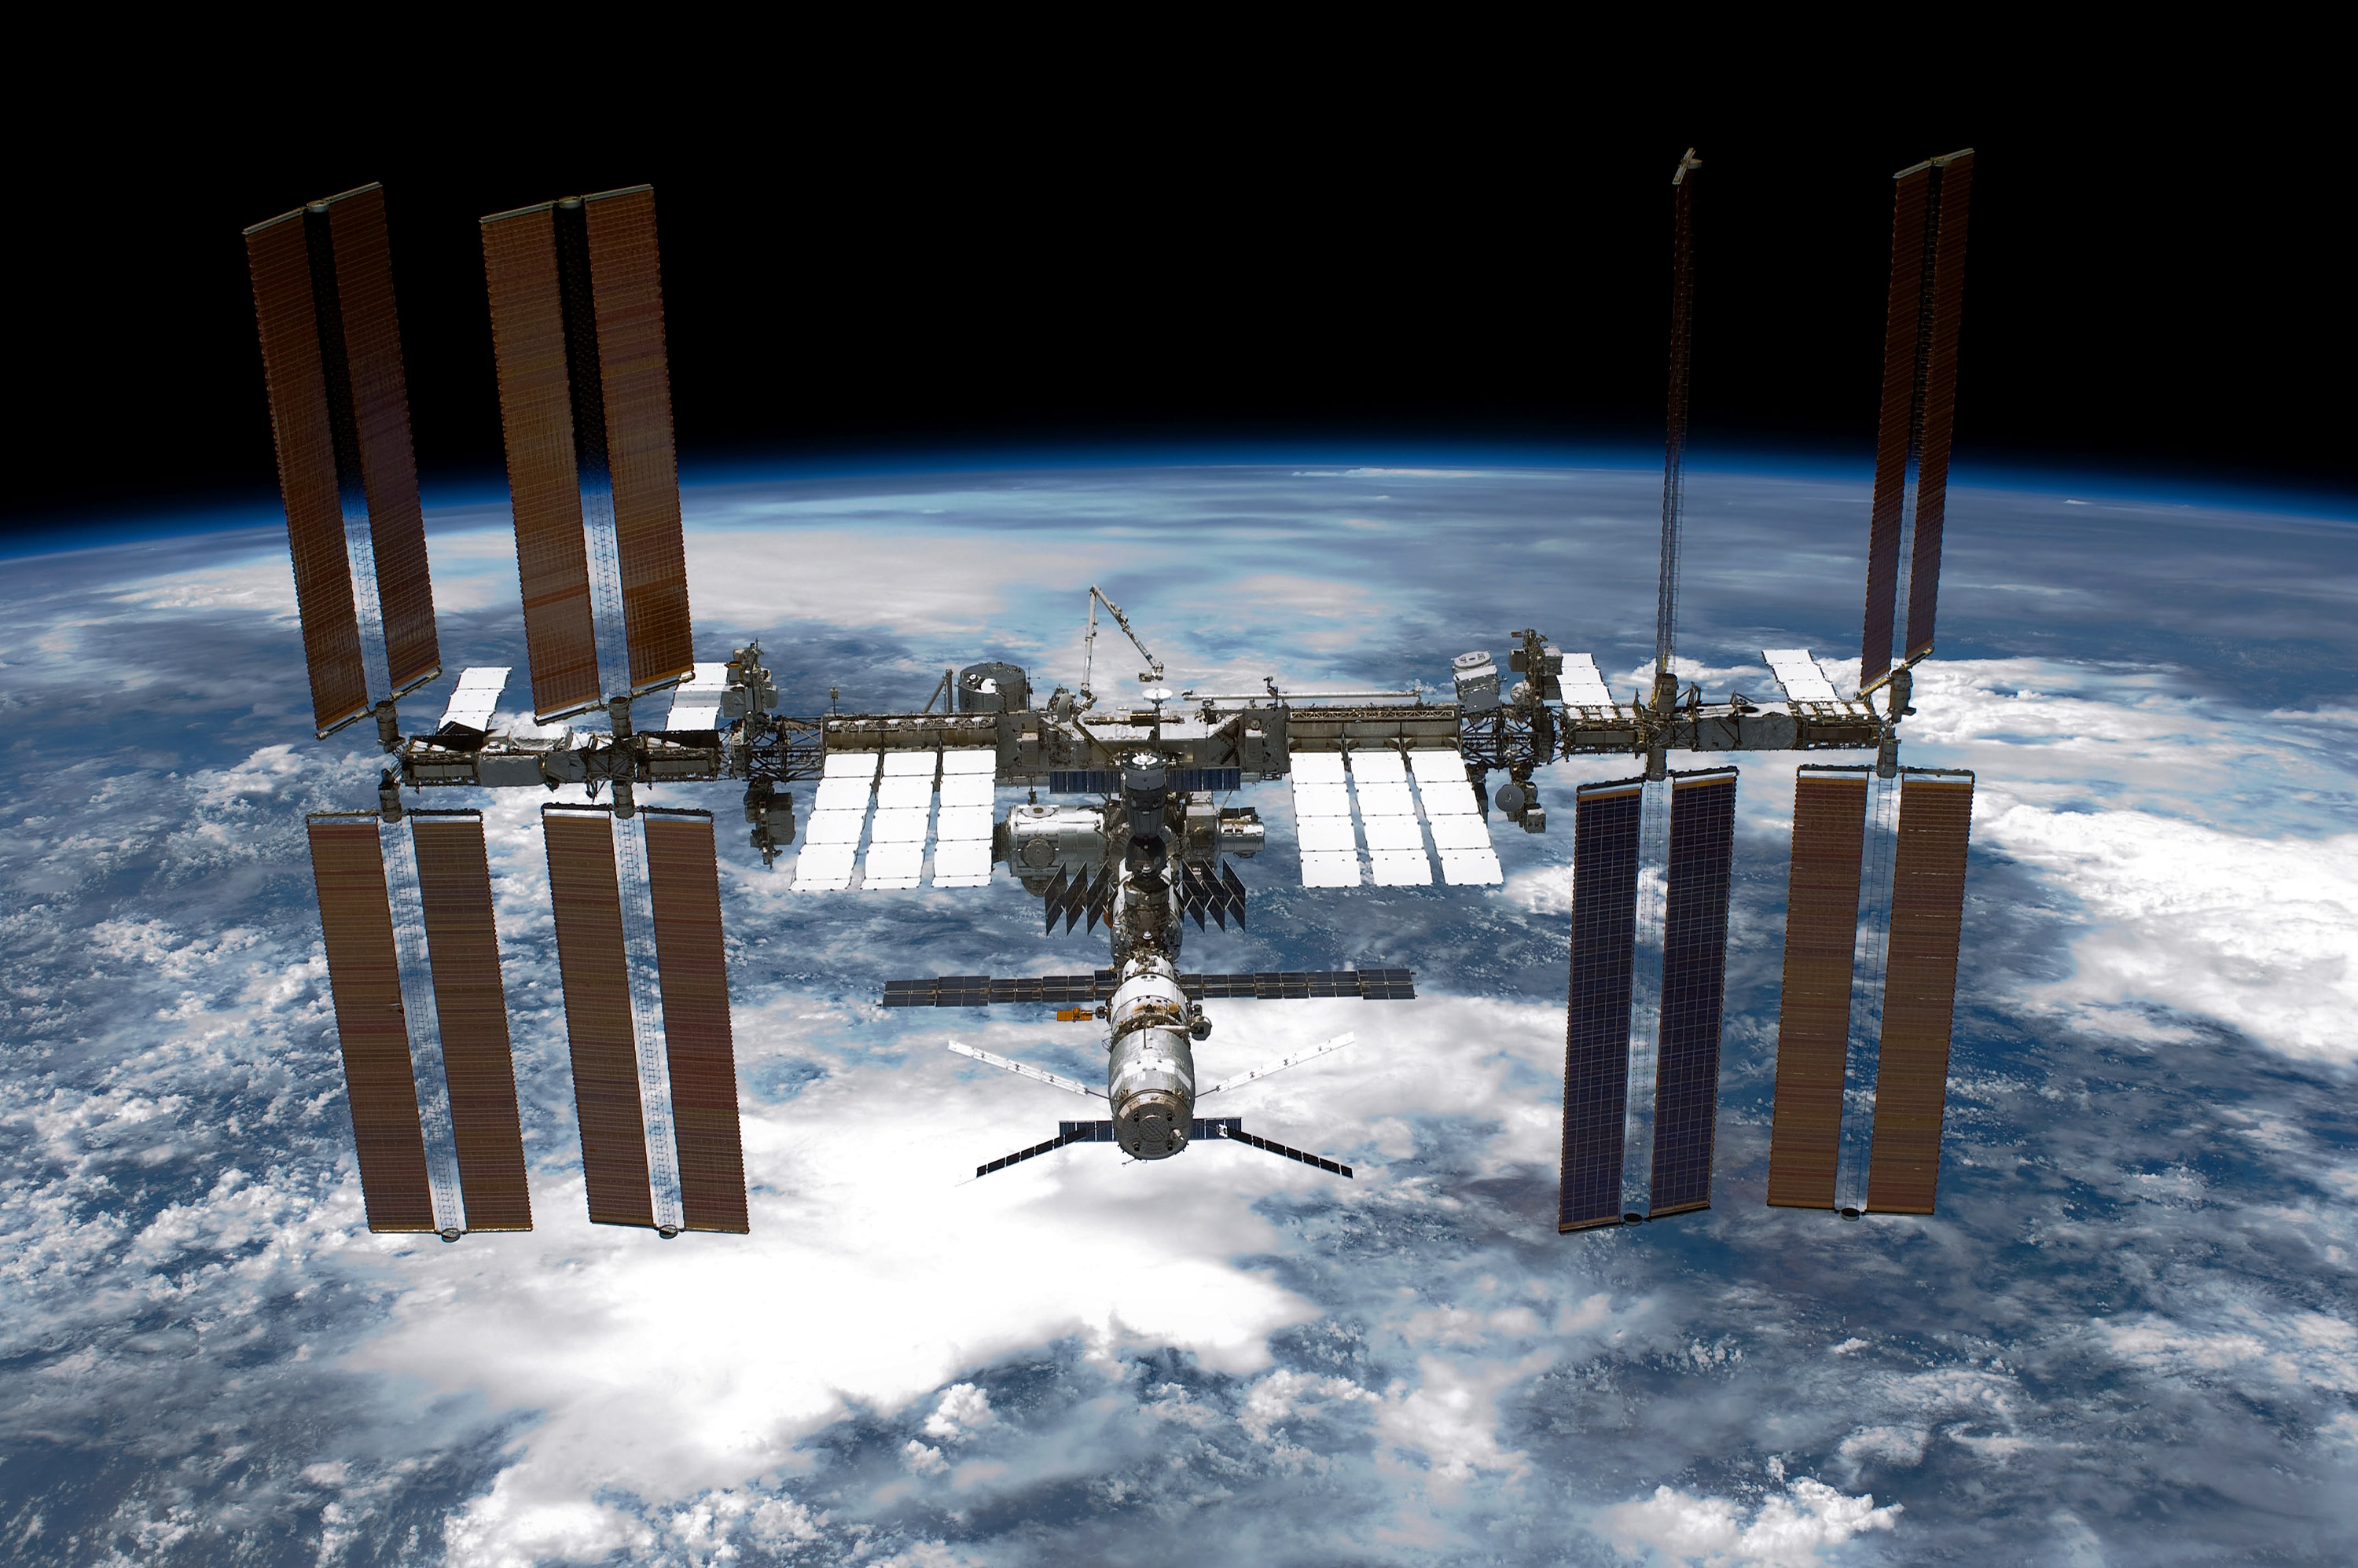 IN SPACE - MAY 29:  In this handout provided by National Aeronautics and Space Administration (NASA), back dropped by planet Earth the International Space Station (ISS) is seen from NASA space shuttle Endeavour after the station and shuttle began their post-undocking relative separation May 29, 2011 in space. After 20 years, 25 missions and more than 115 million miles in space, NASA space shuttle Endeavour is on the last leg of its final flight to the International Space Station before being retired and donated to the California Science Center in Los Angeles. Capt. Mark E. Kelly, U.S. Rep. Gabrielle Giffords' (D-AZ) husband, has lead mission STS-134 as it delivered the Express Logistics Carrier-3 (ELC-3) and the Alpha Magnetic Spectrometer (AMS-2) to the International Space Station. (Photo by NASA via Getty Images)